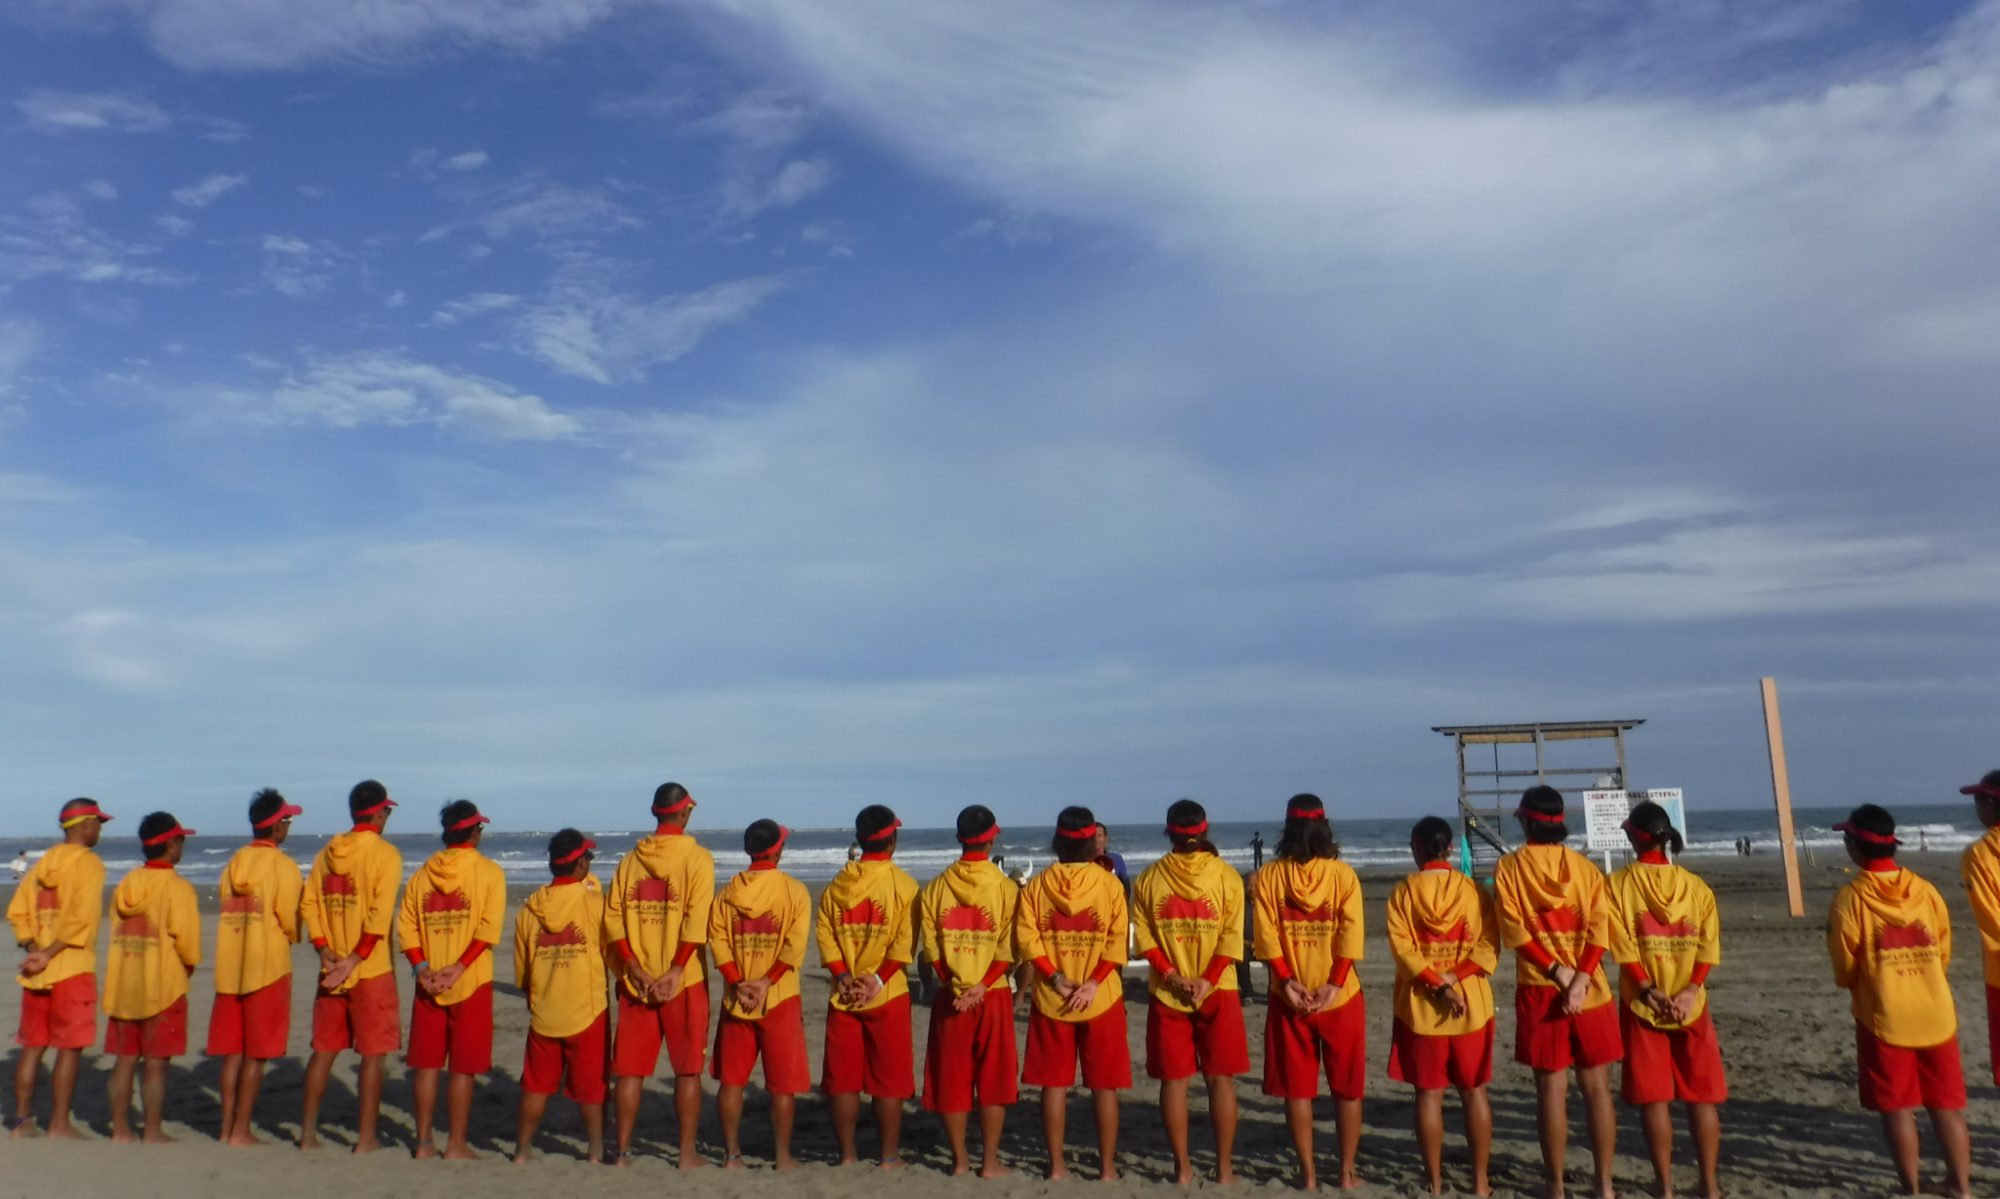 Oarai Surf Life Saving Club